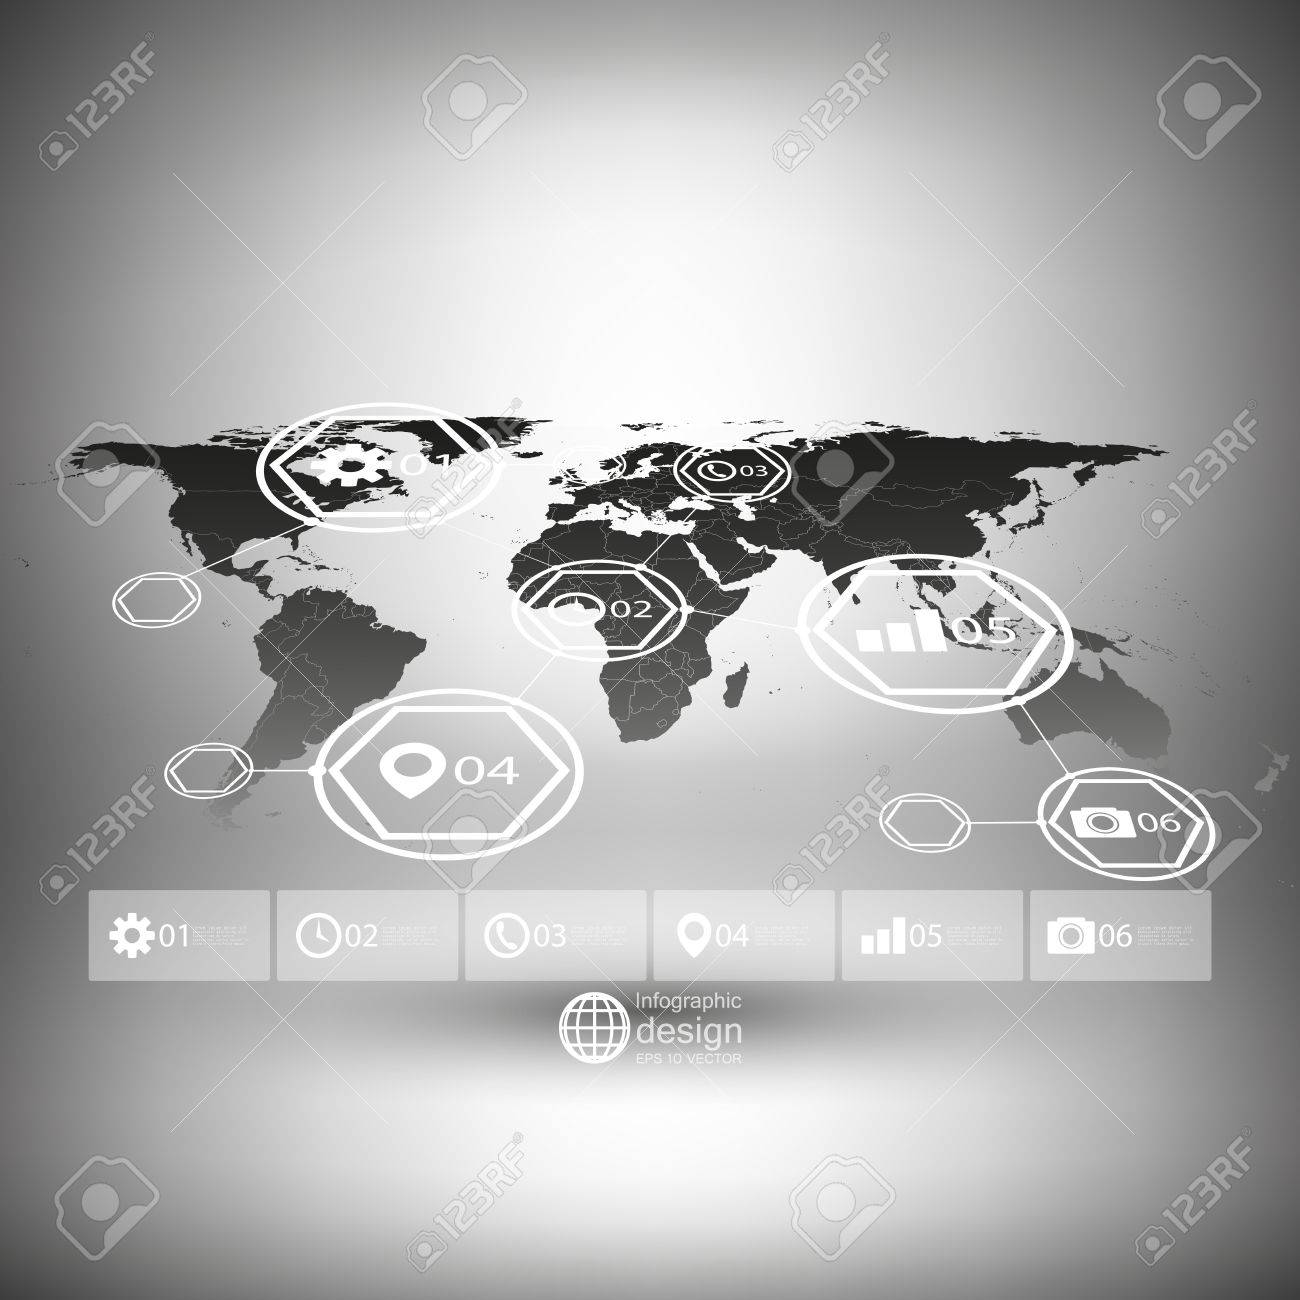 Black world map in perspective infographic vector template for black world map in perspective infographic vector template for business design stock vector 33661738 gumiabroncs Choice Image